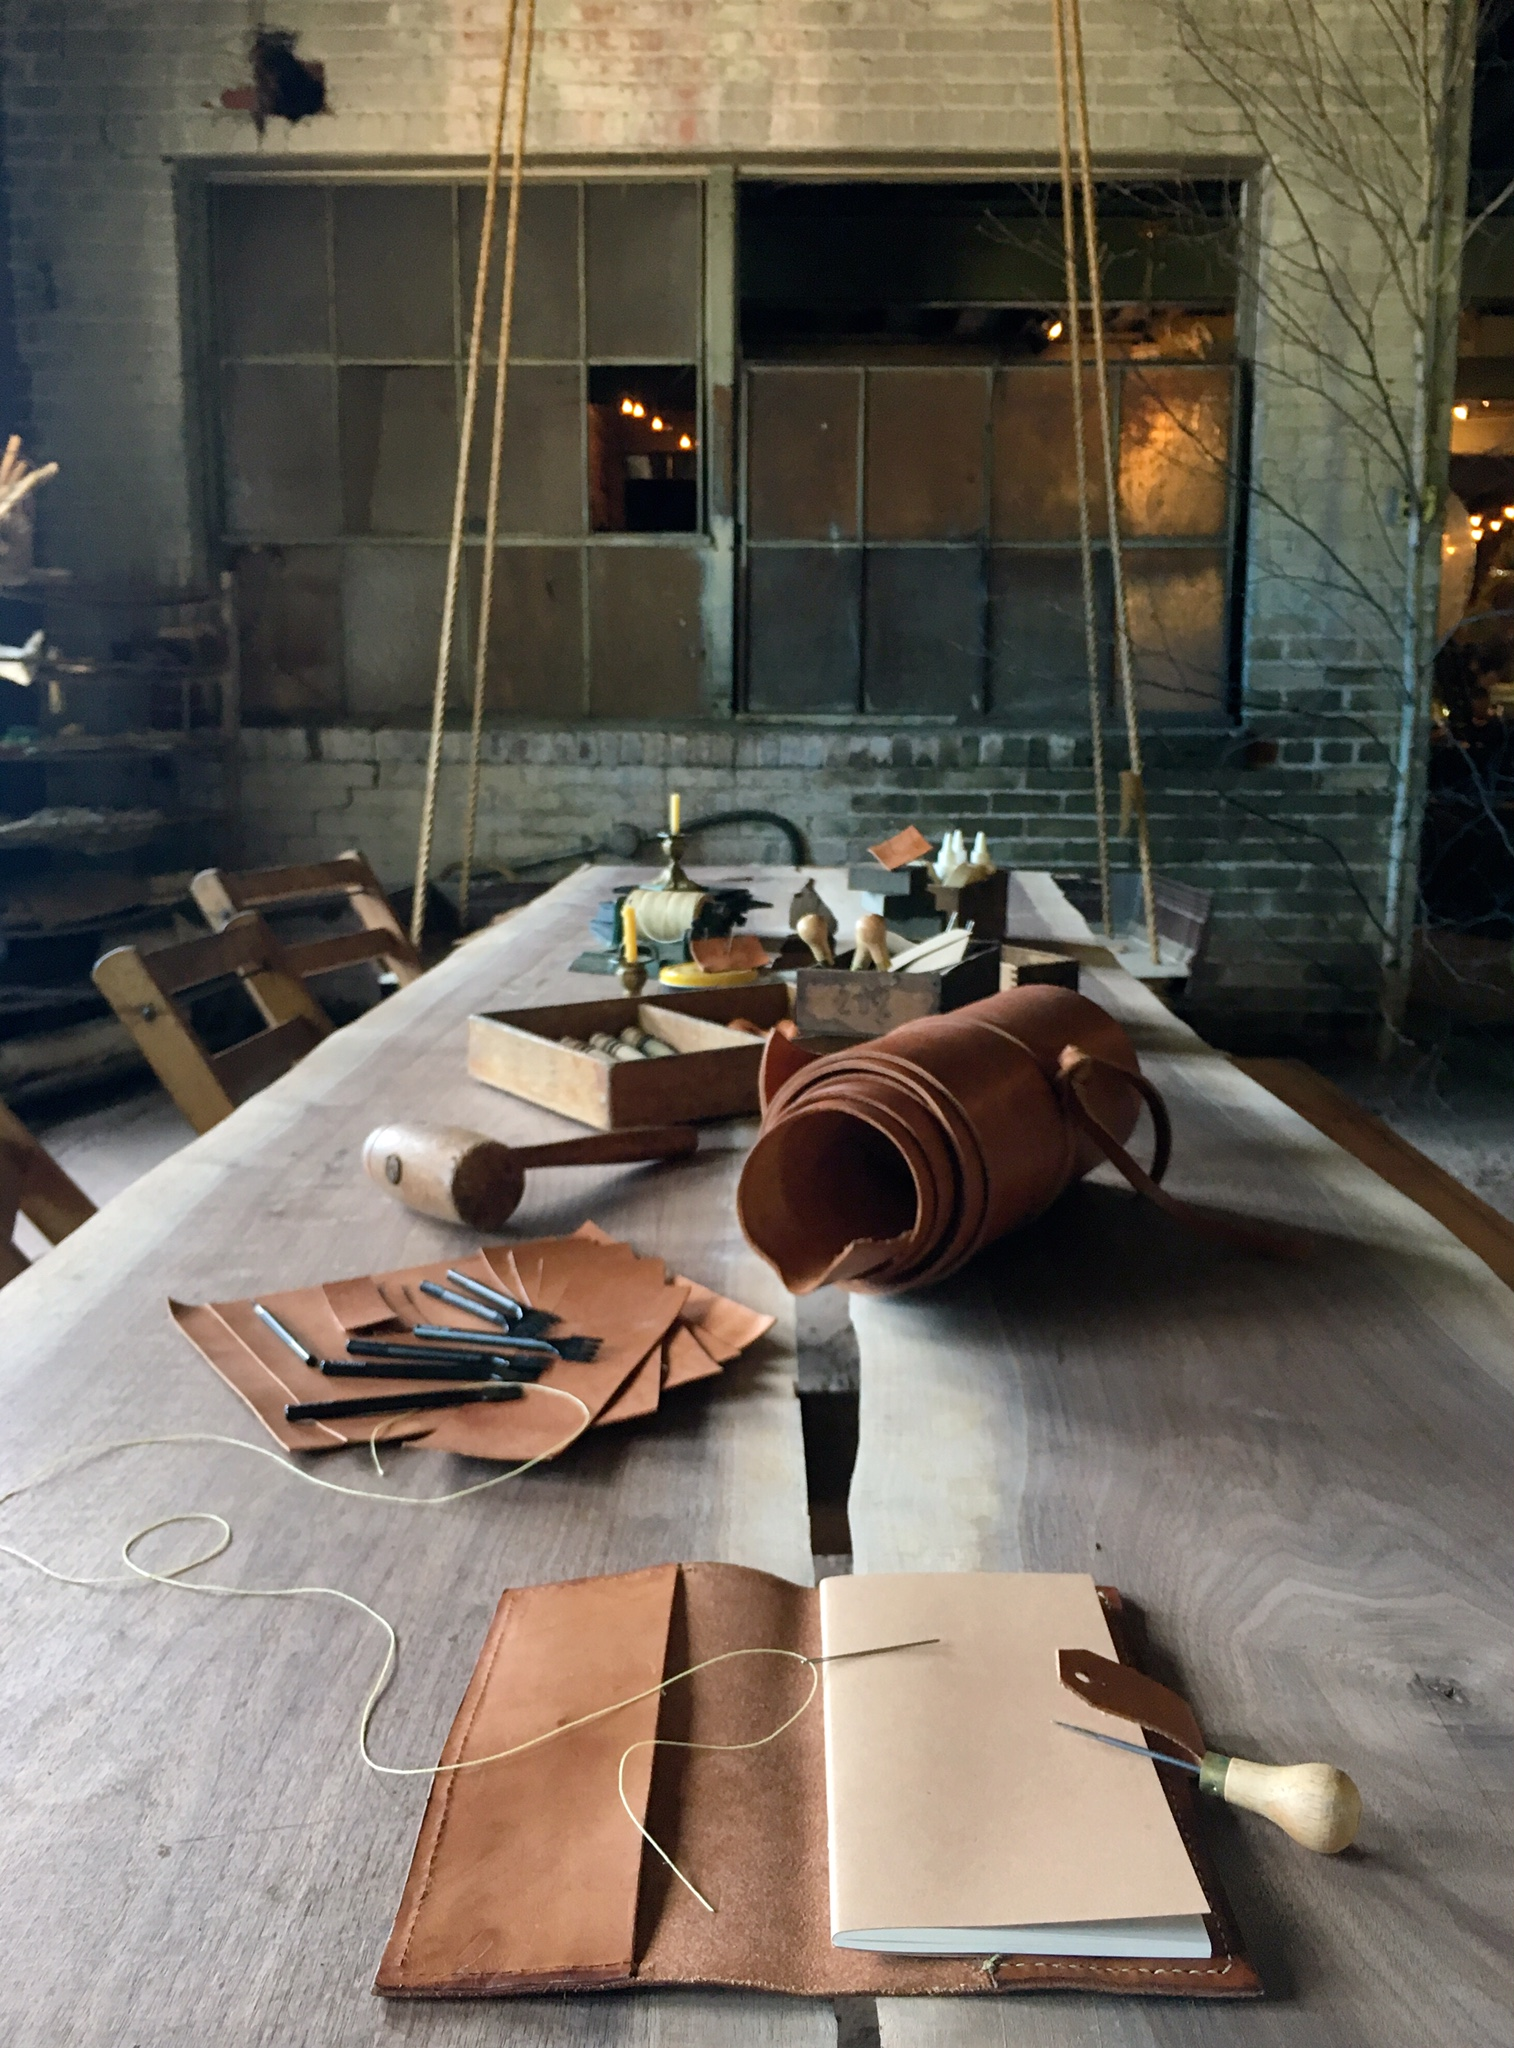 Fish & Bicycle Hand Leather Smithing - photo Juliette Hermant - 2